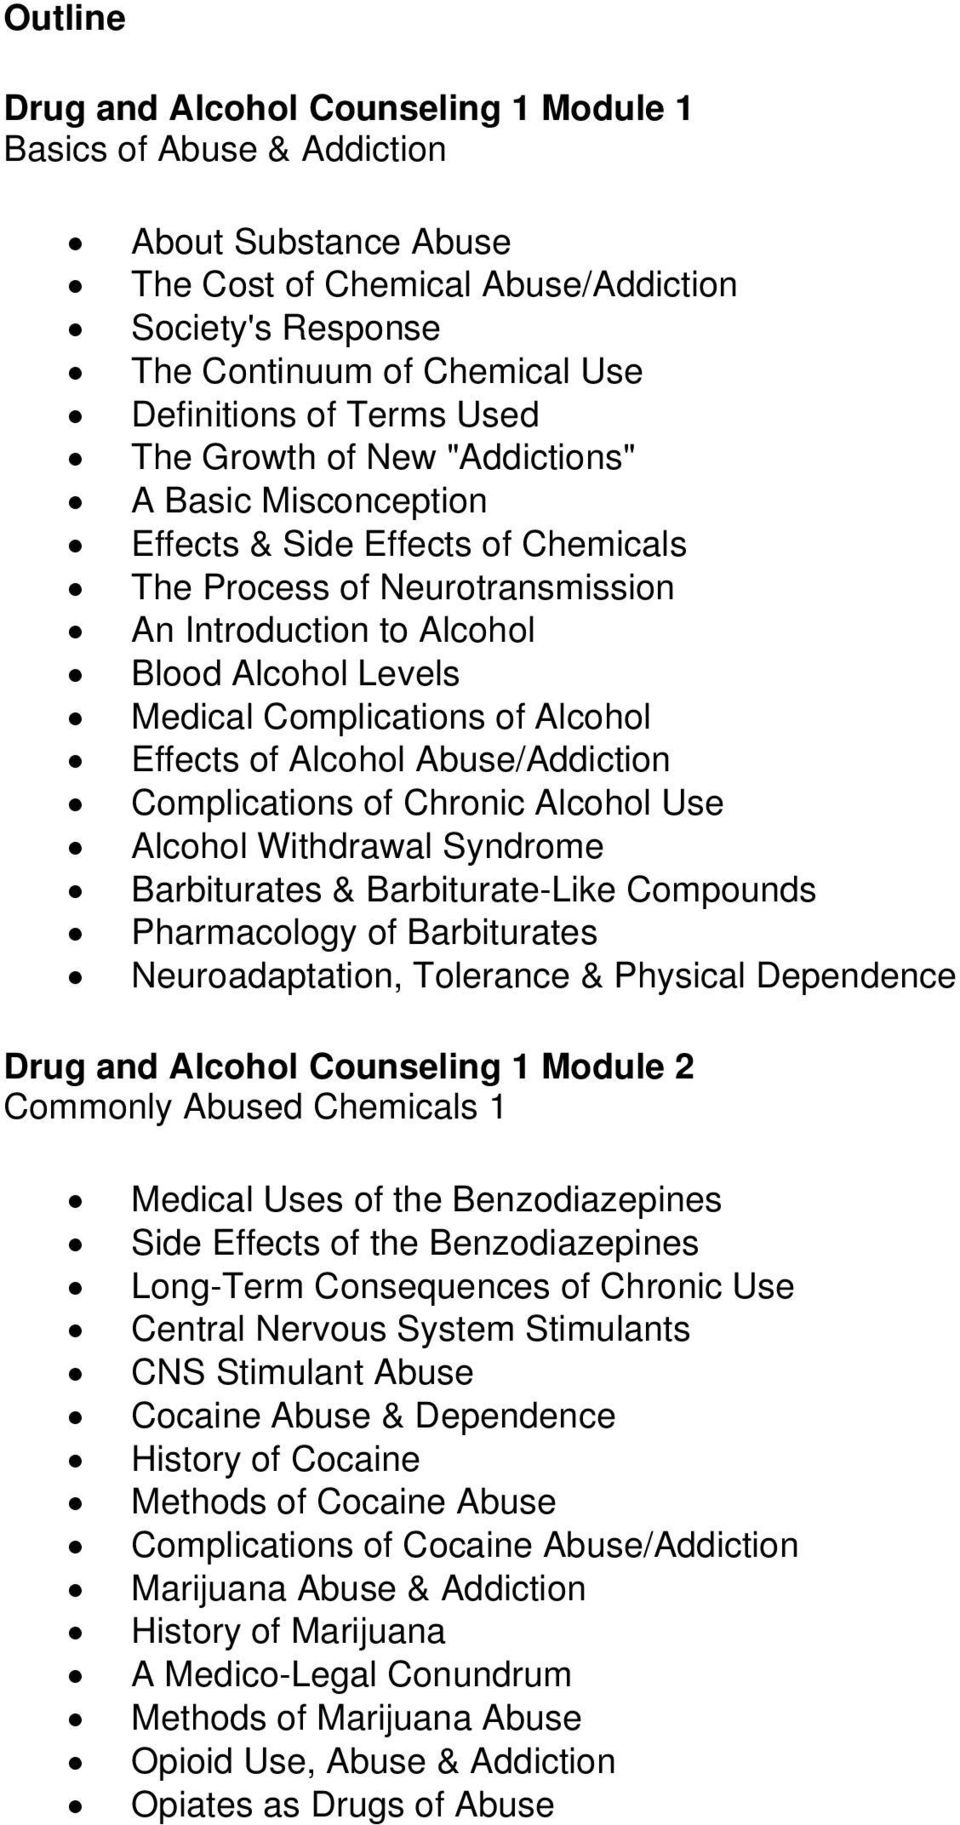 Complications of Alcohol Effects of Alcohol Abuse/Addiction Complications of Chronic Alcohol Use Alcohol Withdrawal Syndrome Barbiturates & Barbiturate-Like Compounds Pharmacology of Barbiturates